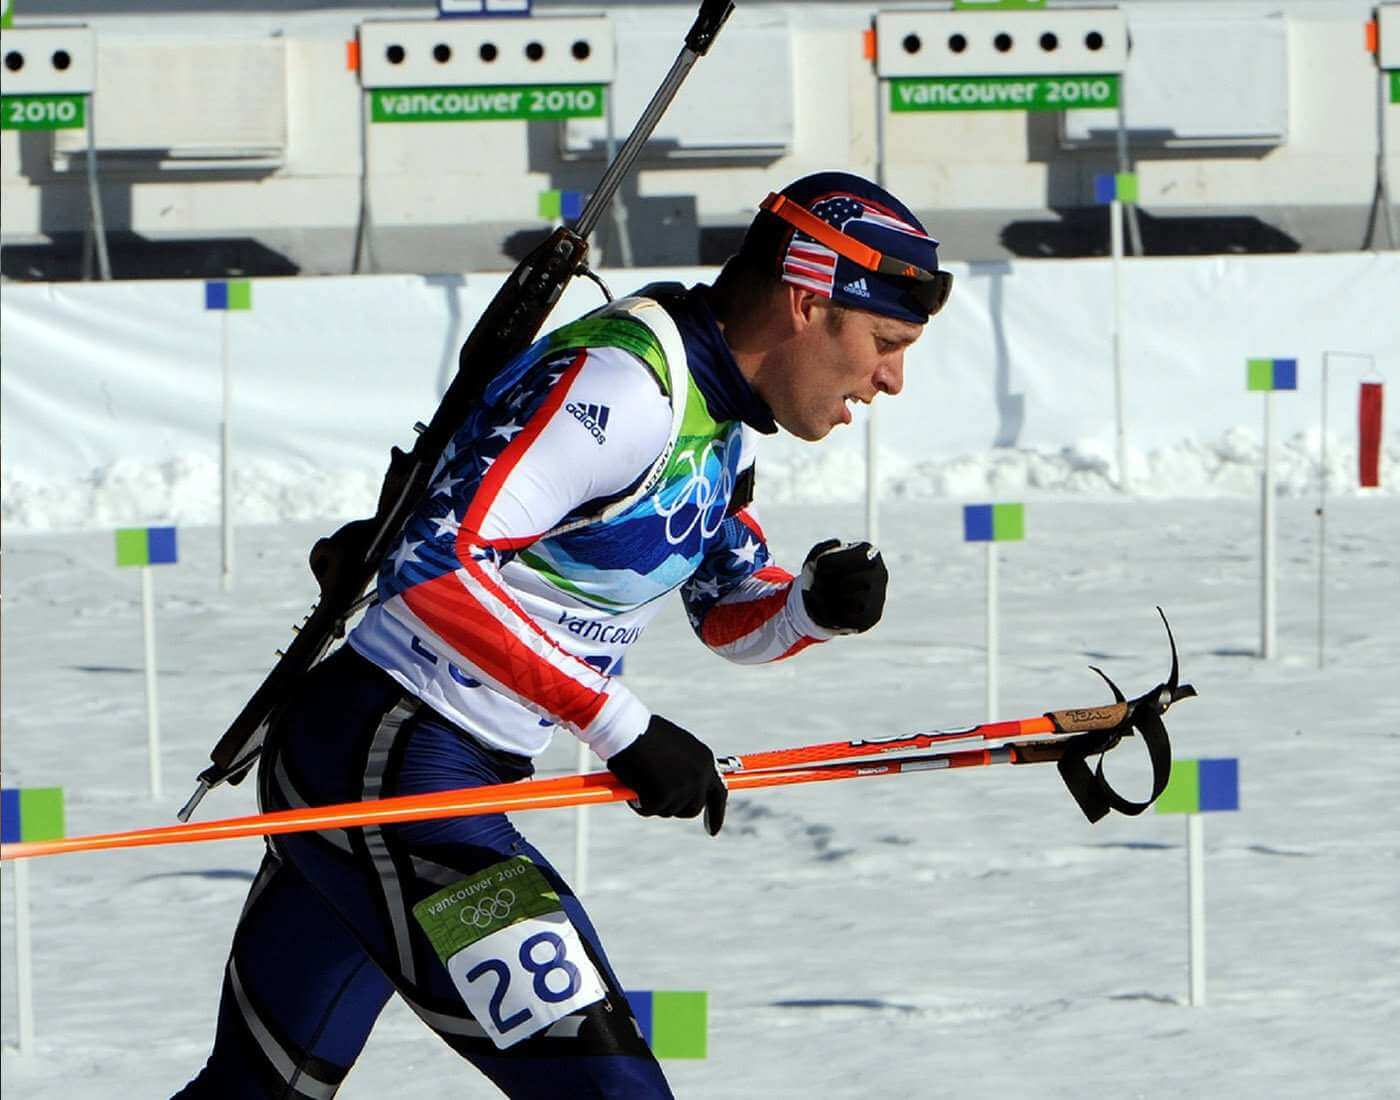 https://sportsmatik.com/uploads/matik-sports-corner/matik-know-how/biathlon_1493725843_16397.jpg